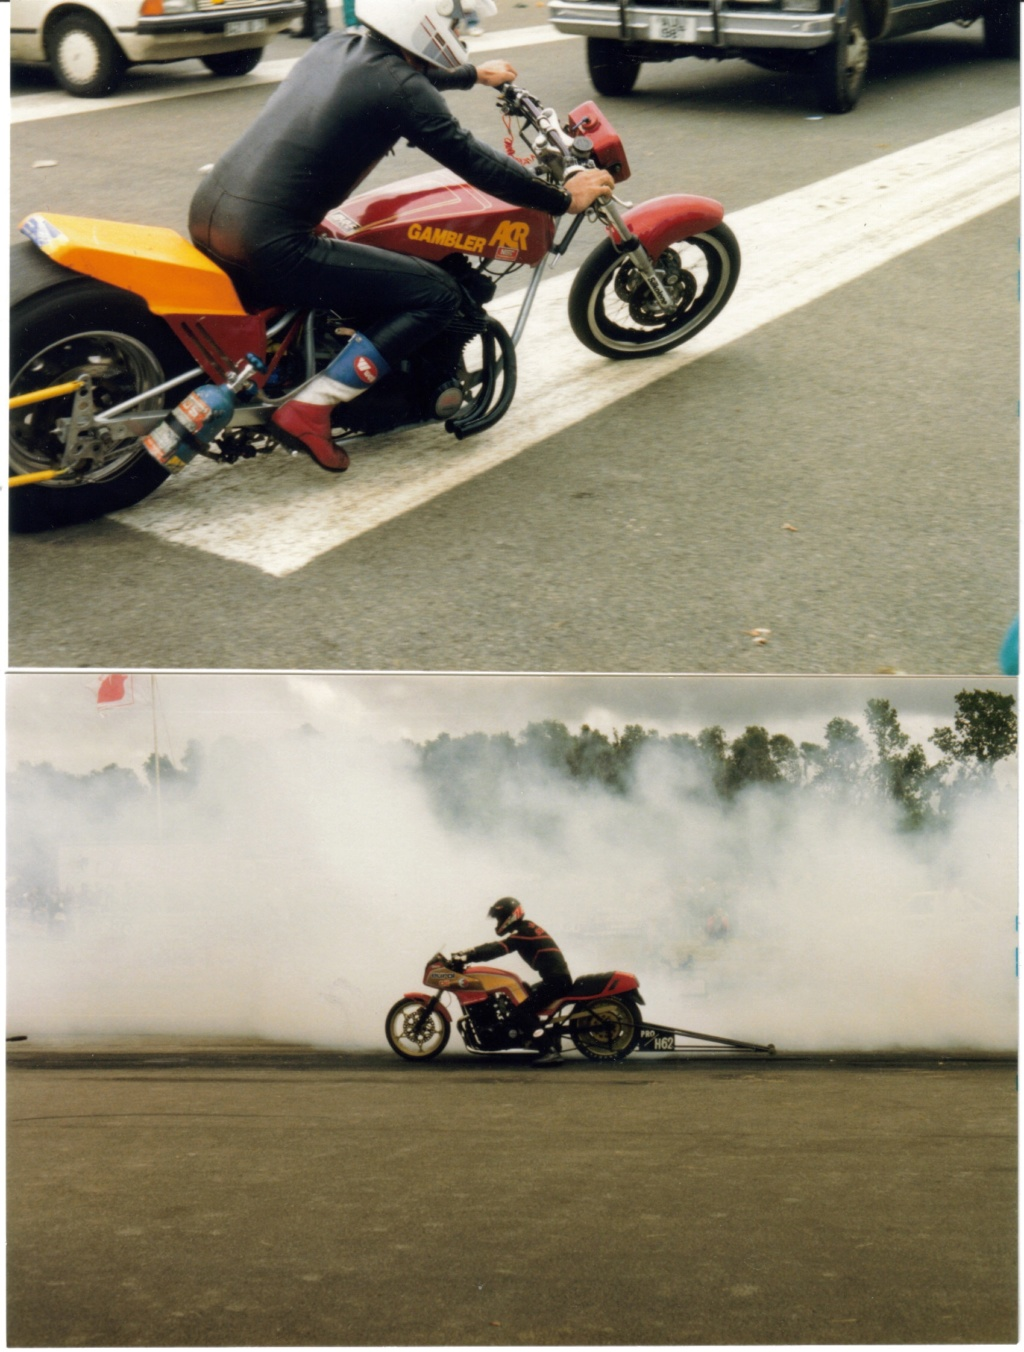 dragster guiscriff 1989 Lastsc11